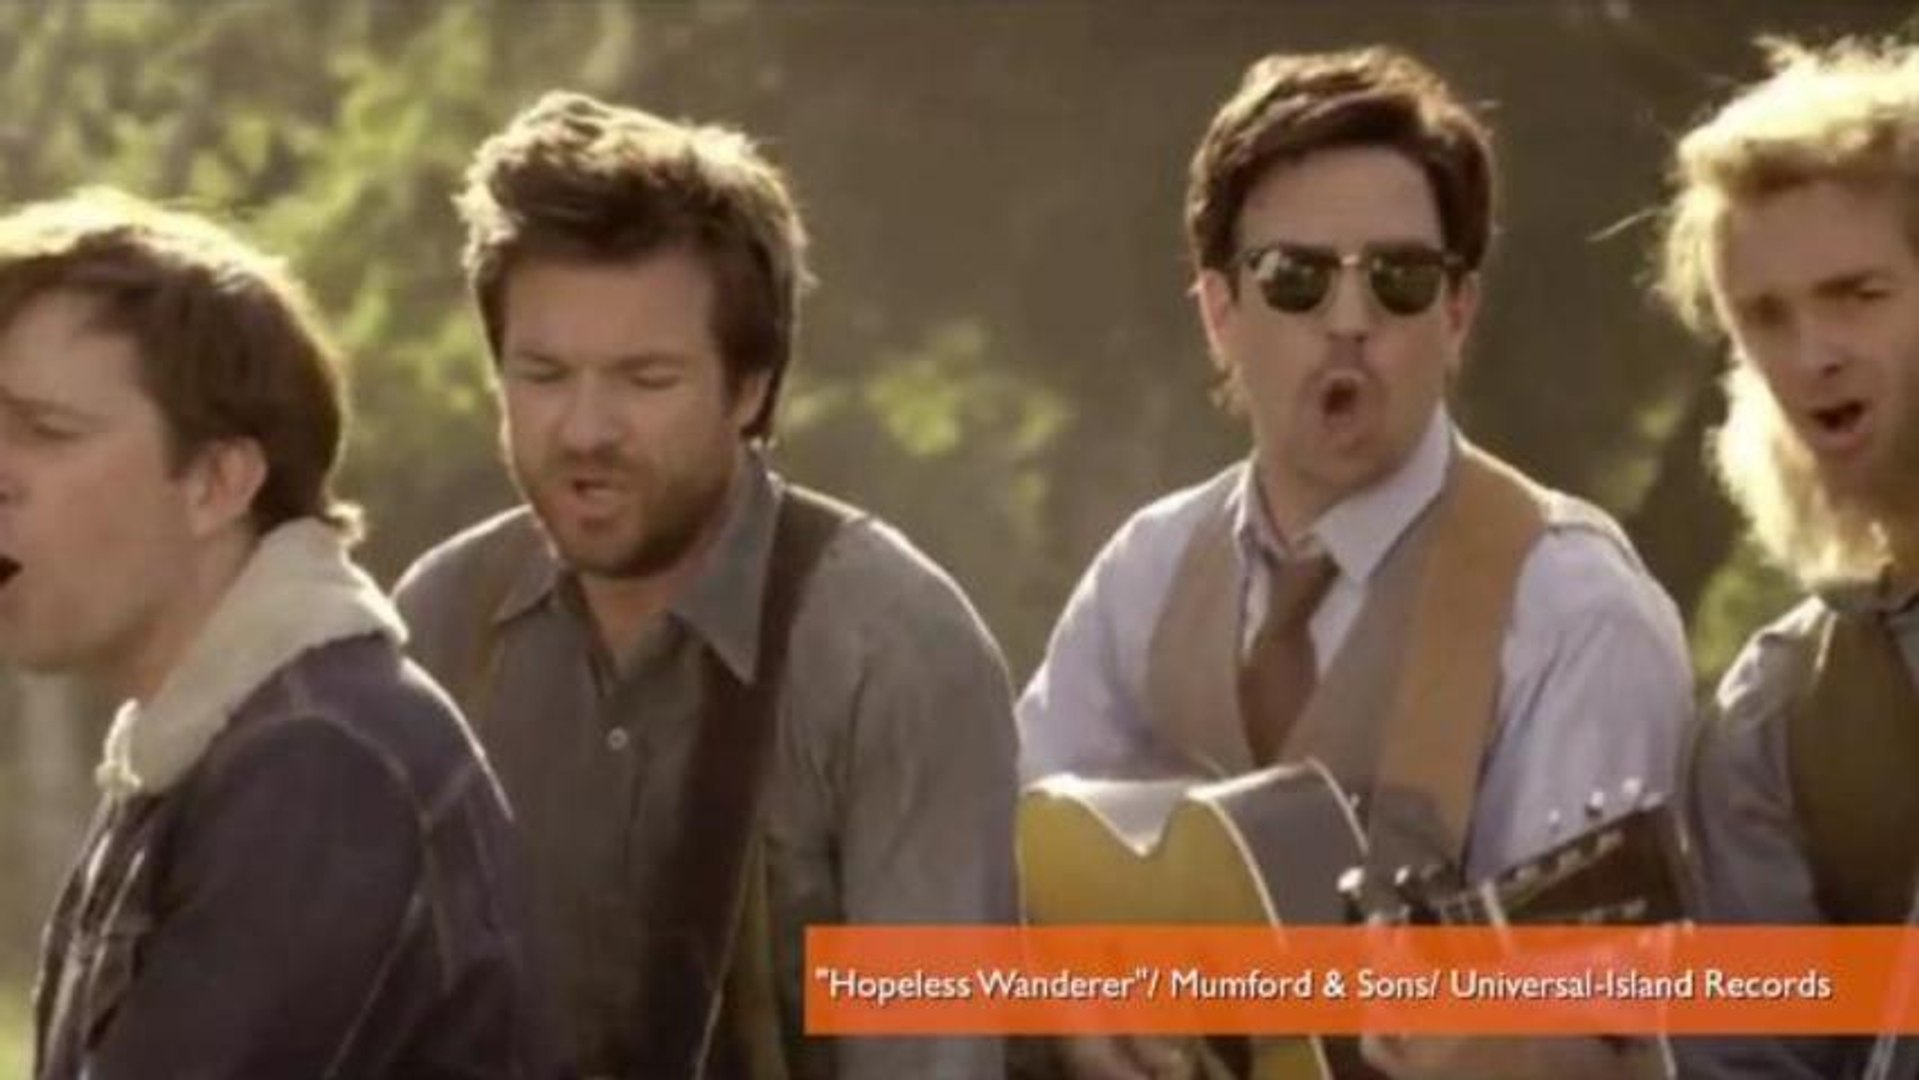 Jason Sudeikis, Ed Helms Star in Amazing Mumford & Sons Parody